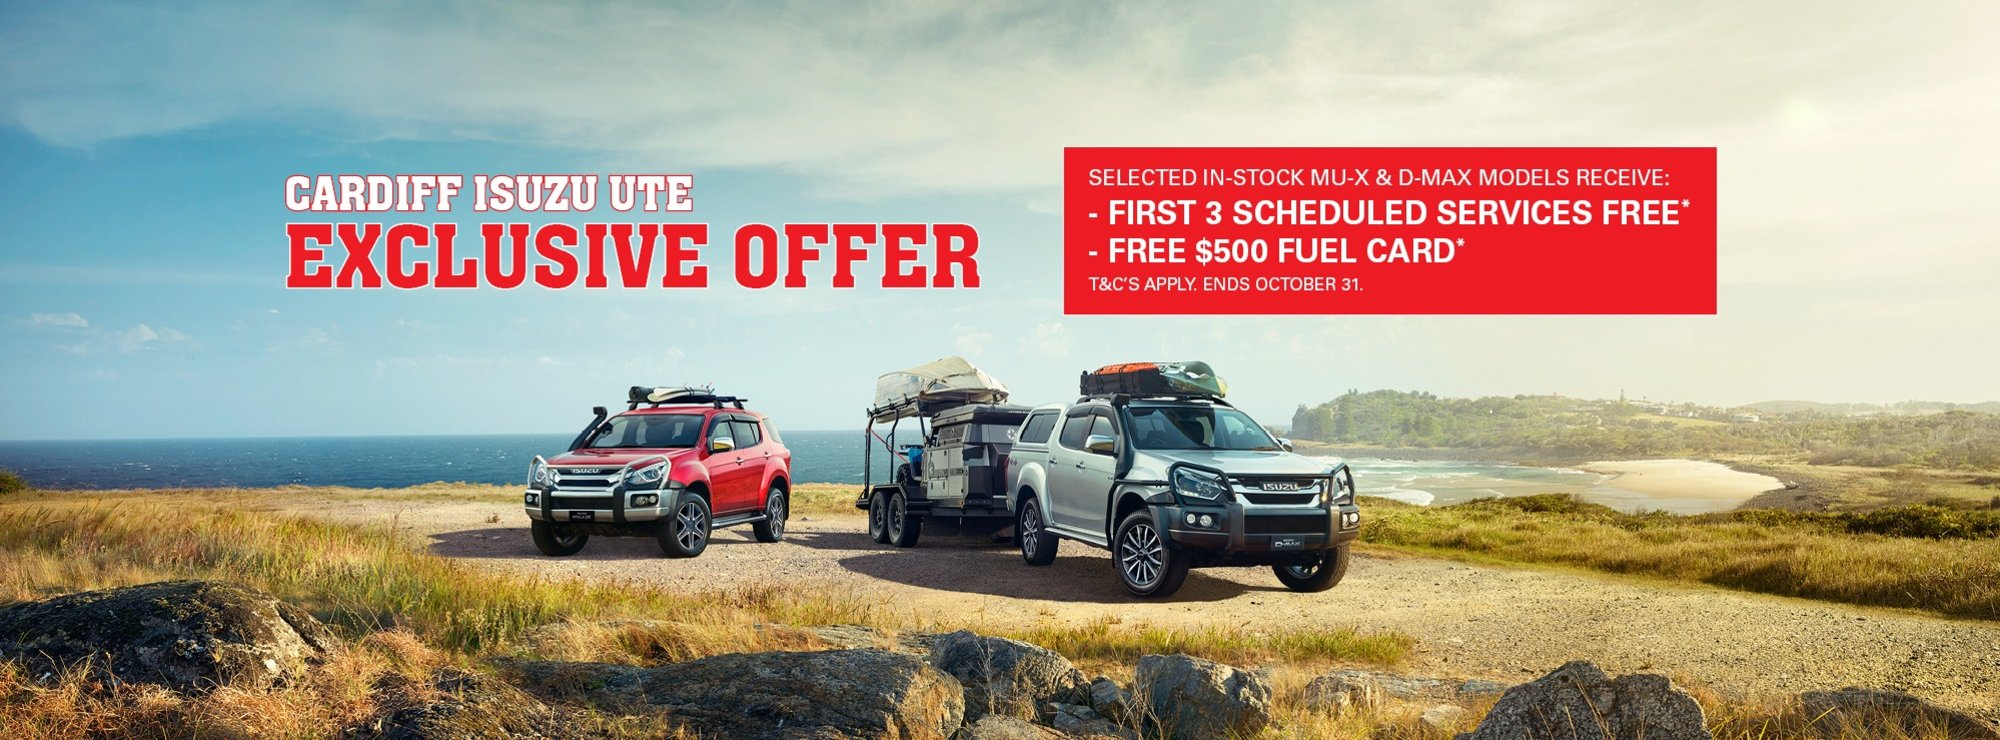 Cardiff Isuzu Ute Exclusive Offer